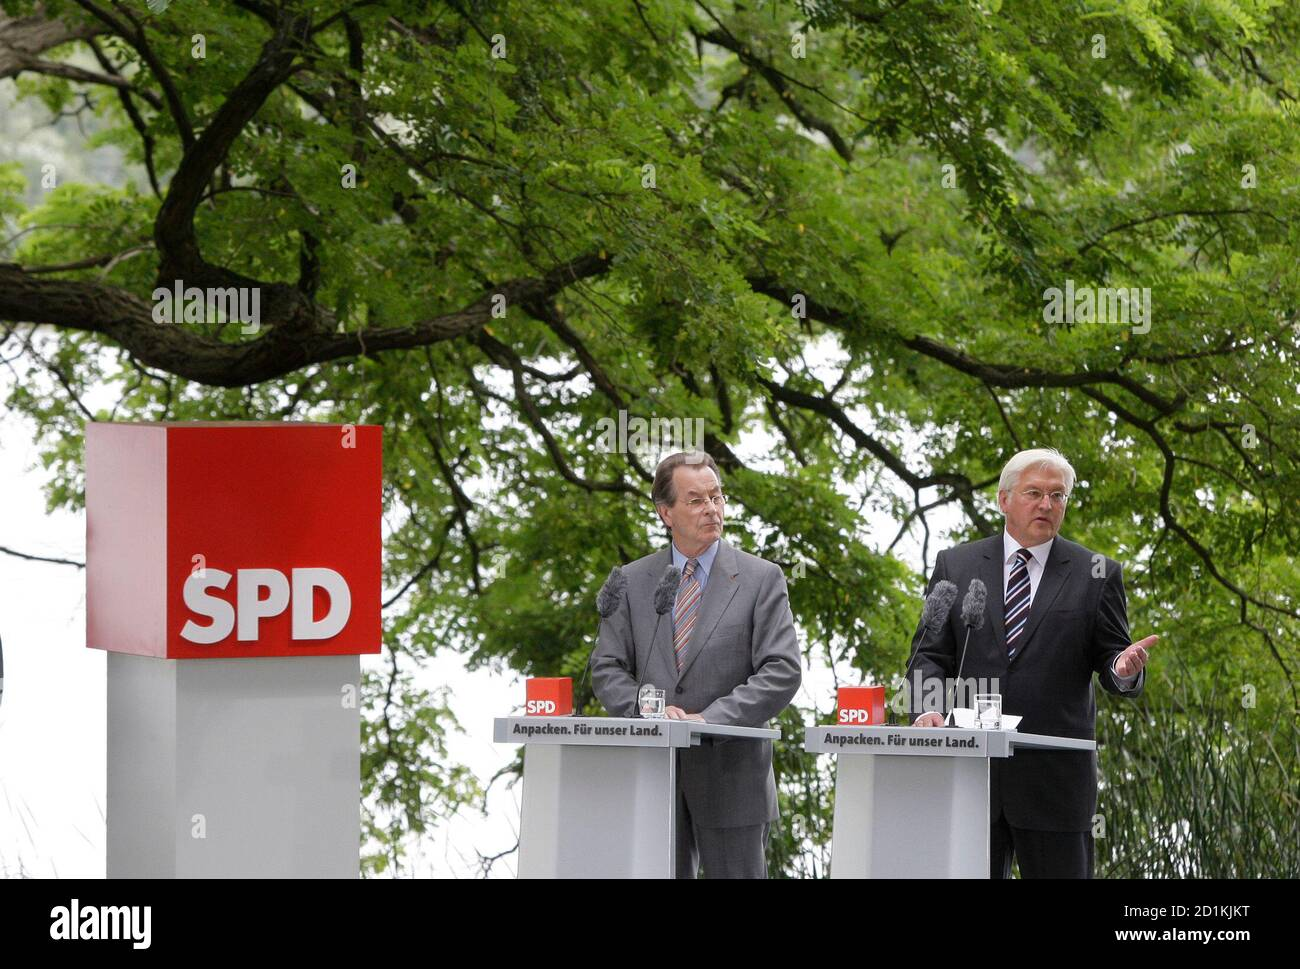 Frank-Walter Steinmeier (R), Germany's Social Democratic candidate for chancellor and SPD leader Franz Muentefering address the media in Potsdam, July 30, 2009.     REUTERS/Tobias Schwarz     (GERMANY POLITICS ELECTIONS) Banque D'Images